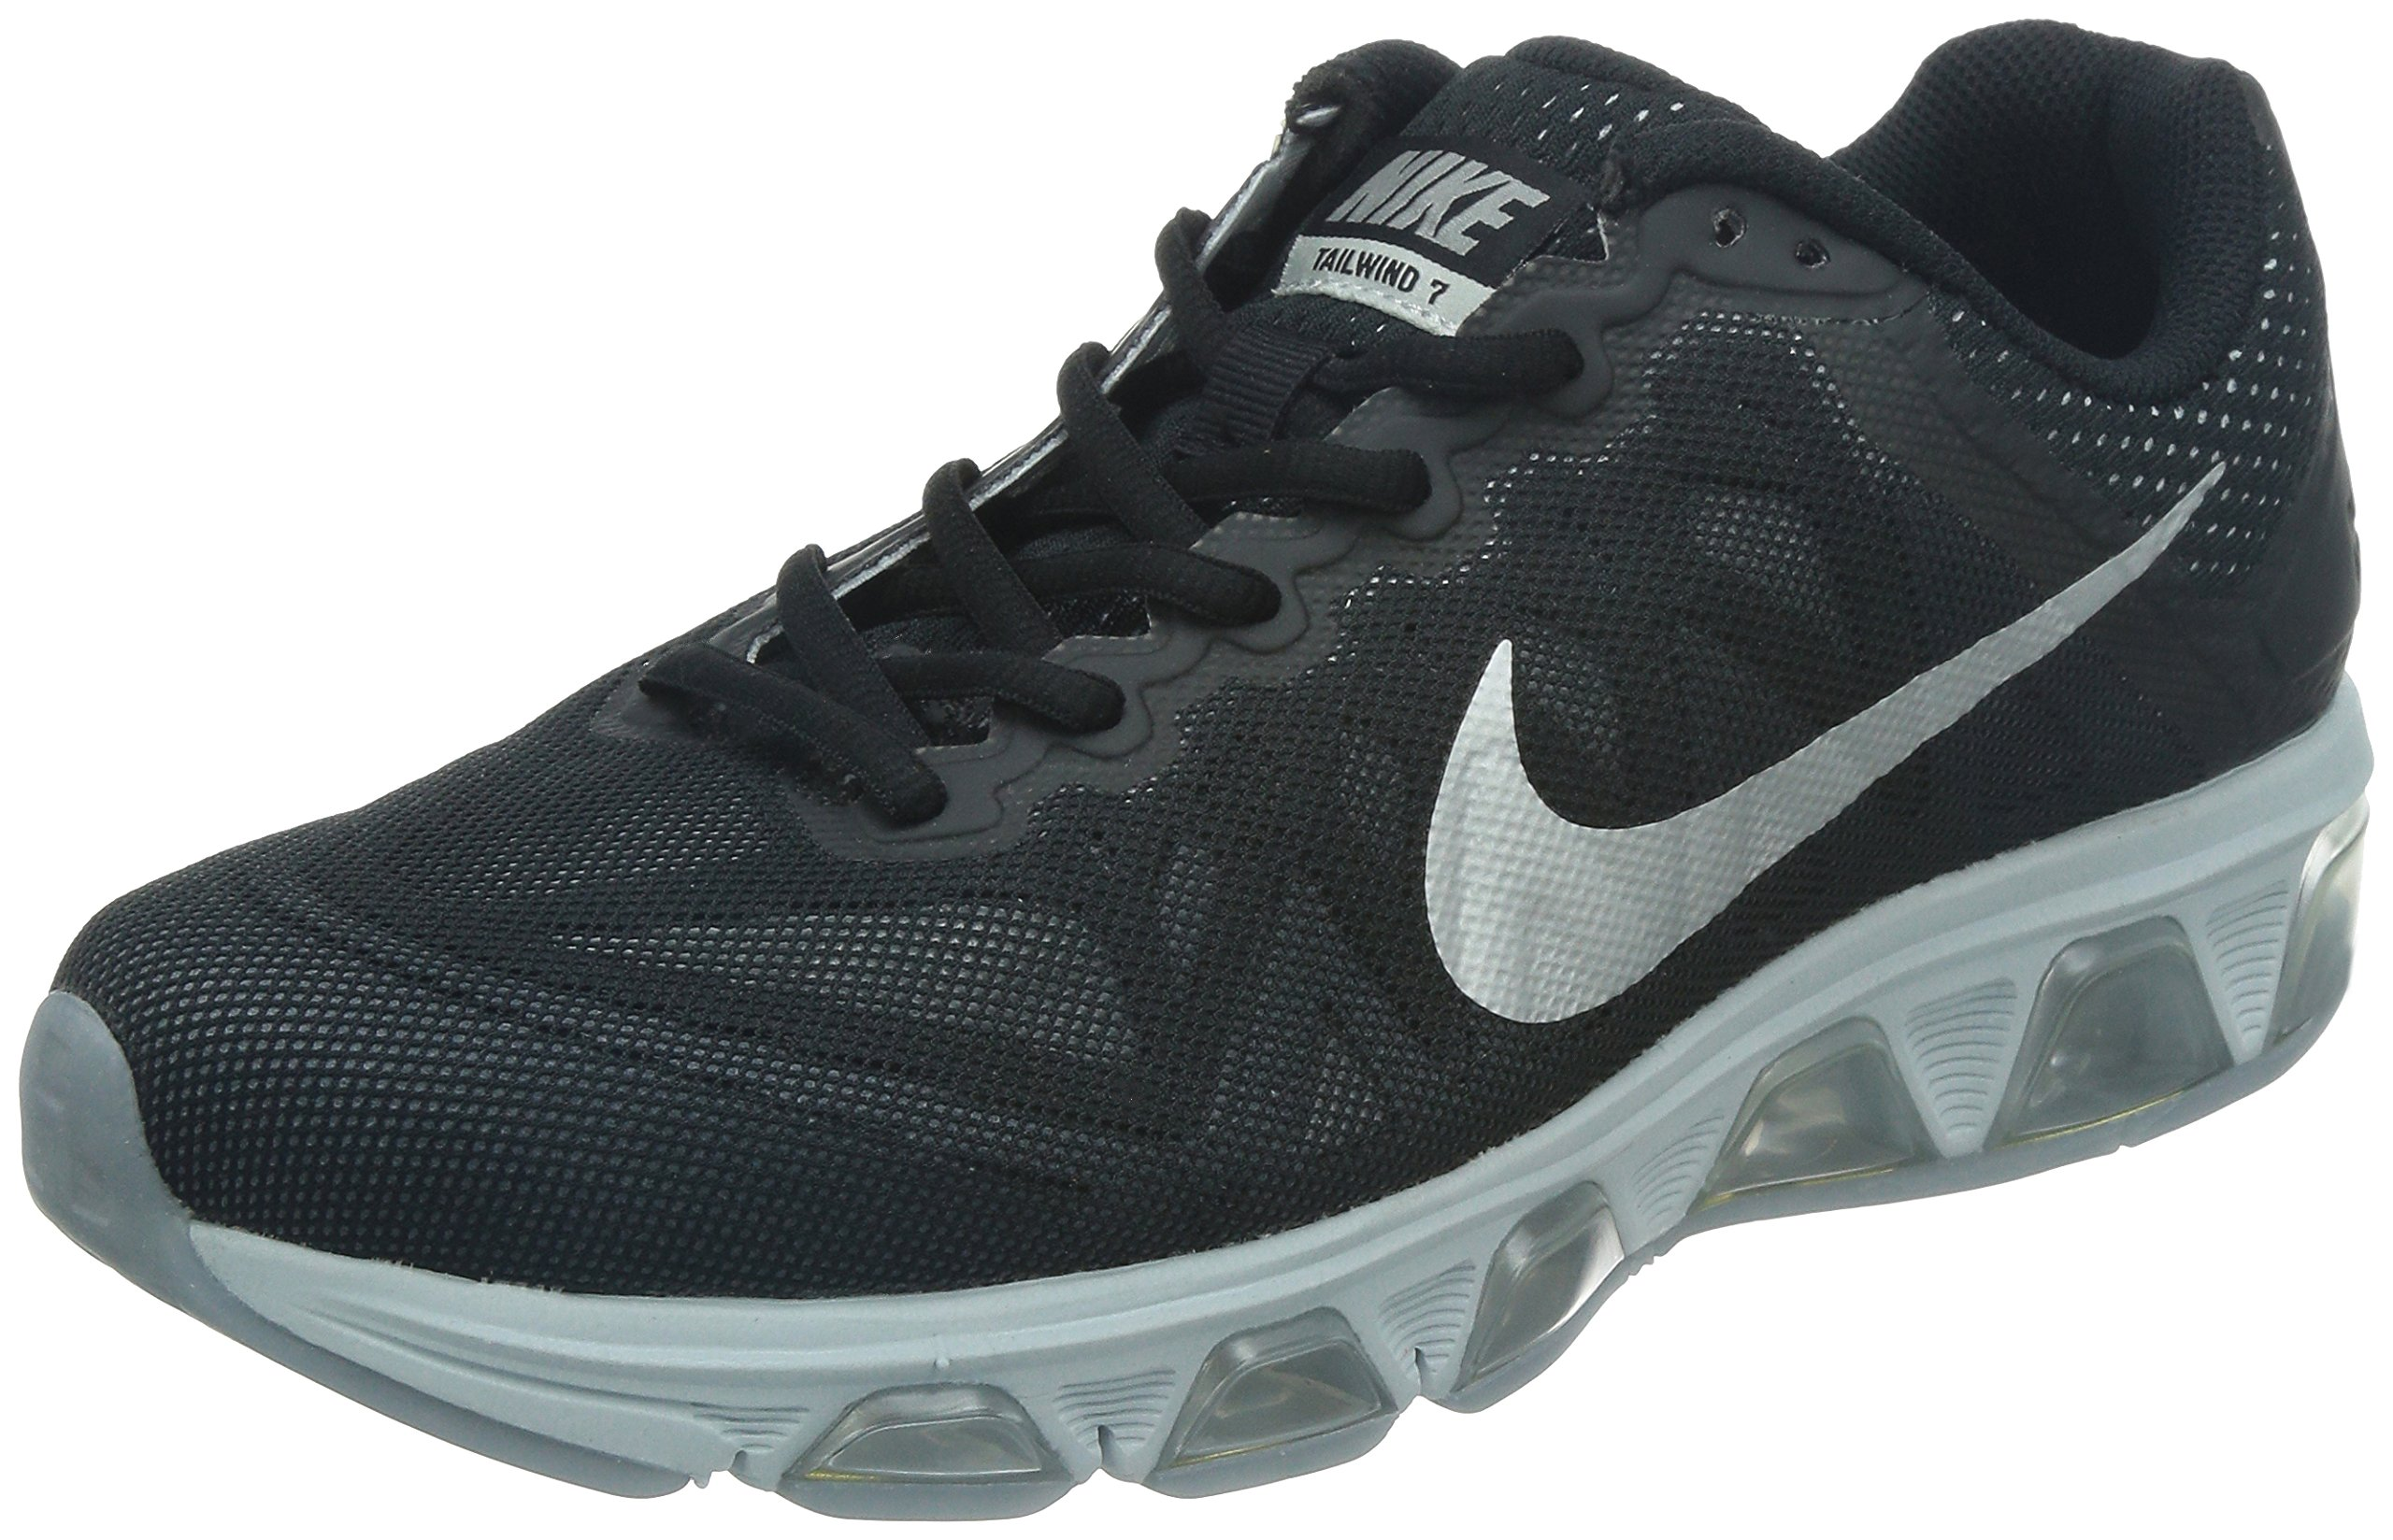 Galleon - Nike Men s Air Max Tailwind 7 Running Shoe Black Silver Size 8.5  M US fddb46a24